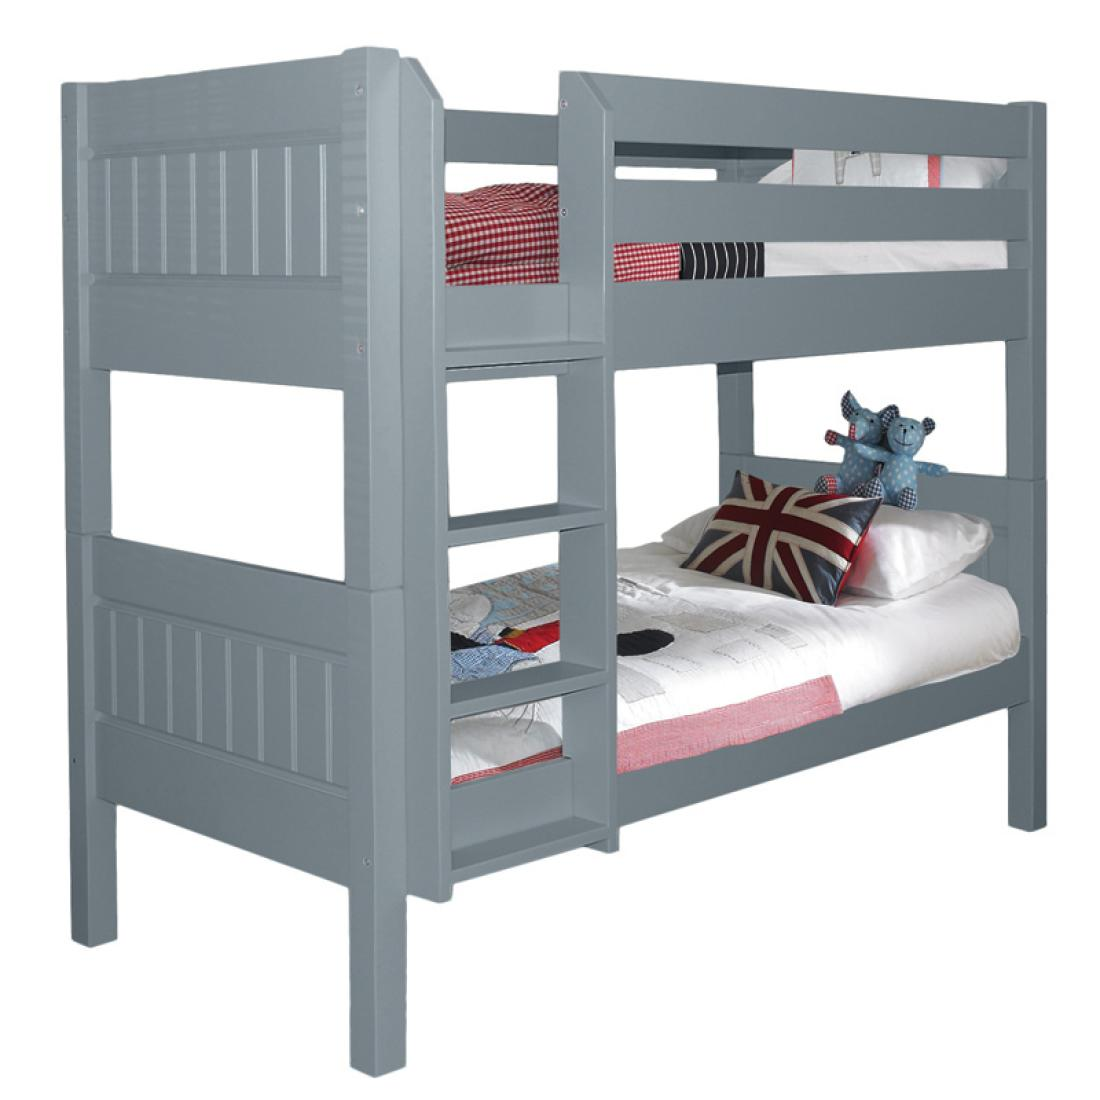 Padstow Childrens Bunk Bed Childrens Bedroom Furniture Uk